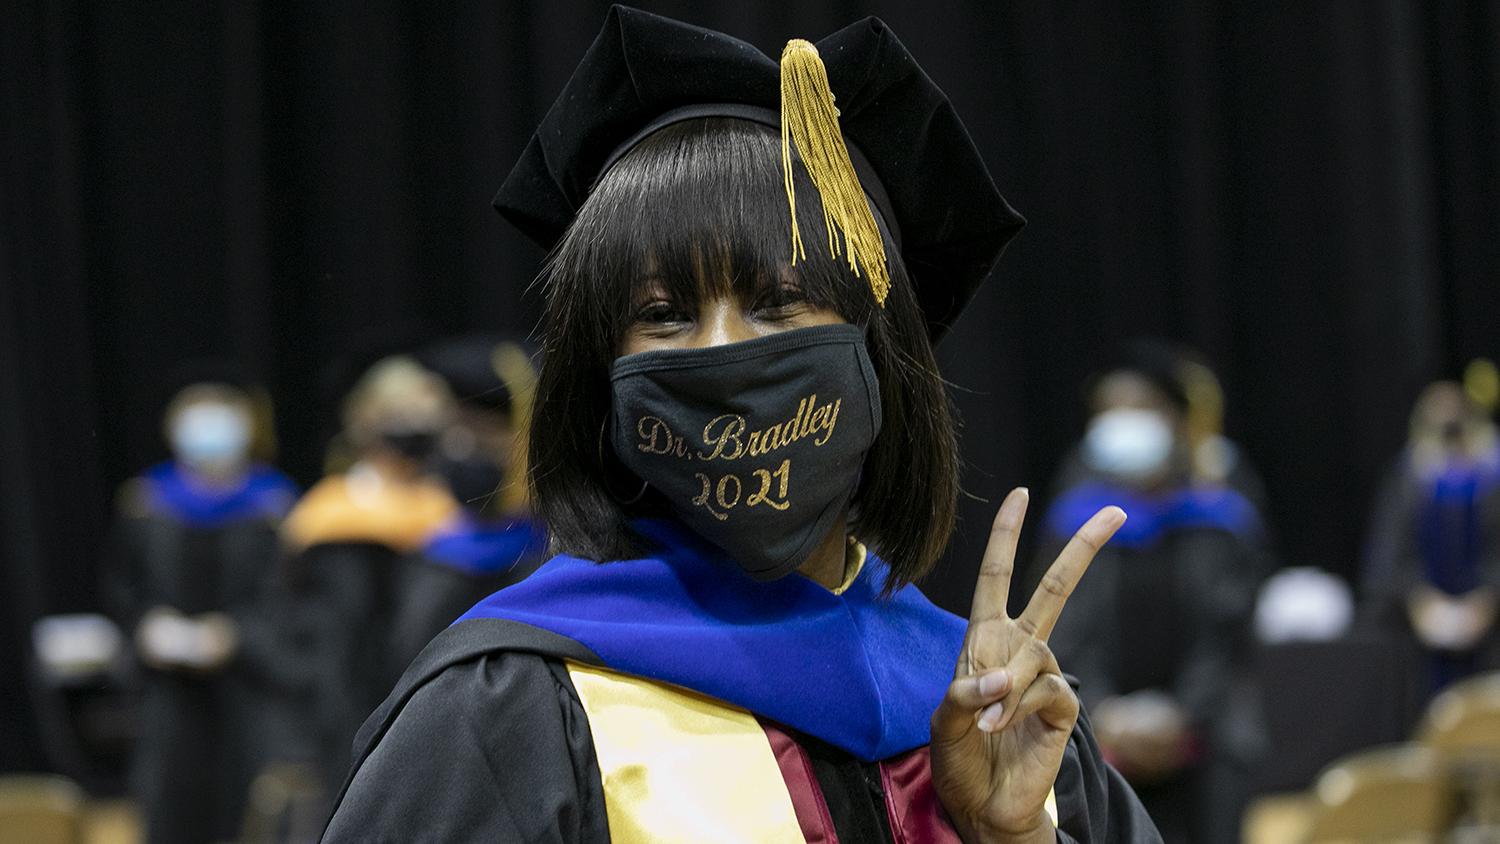 a woman giving the peace sign in her regalia at the ceremony